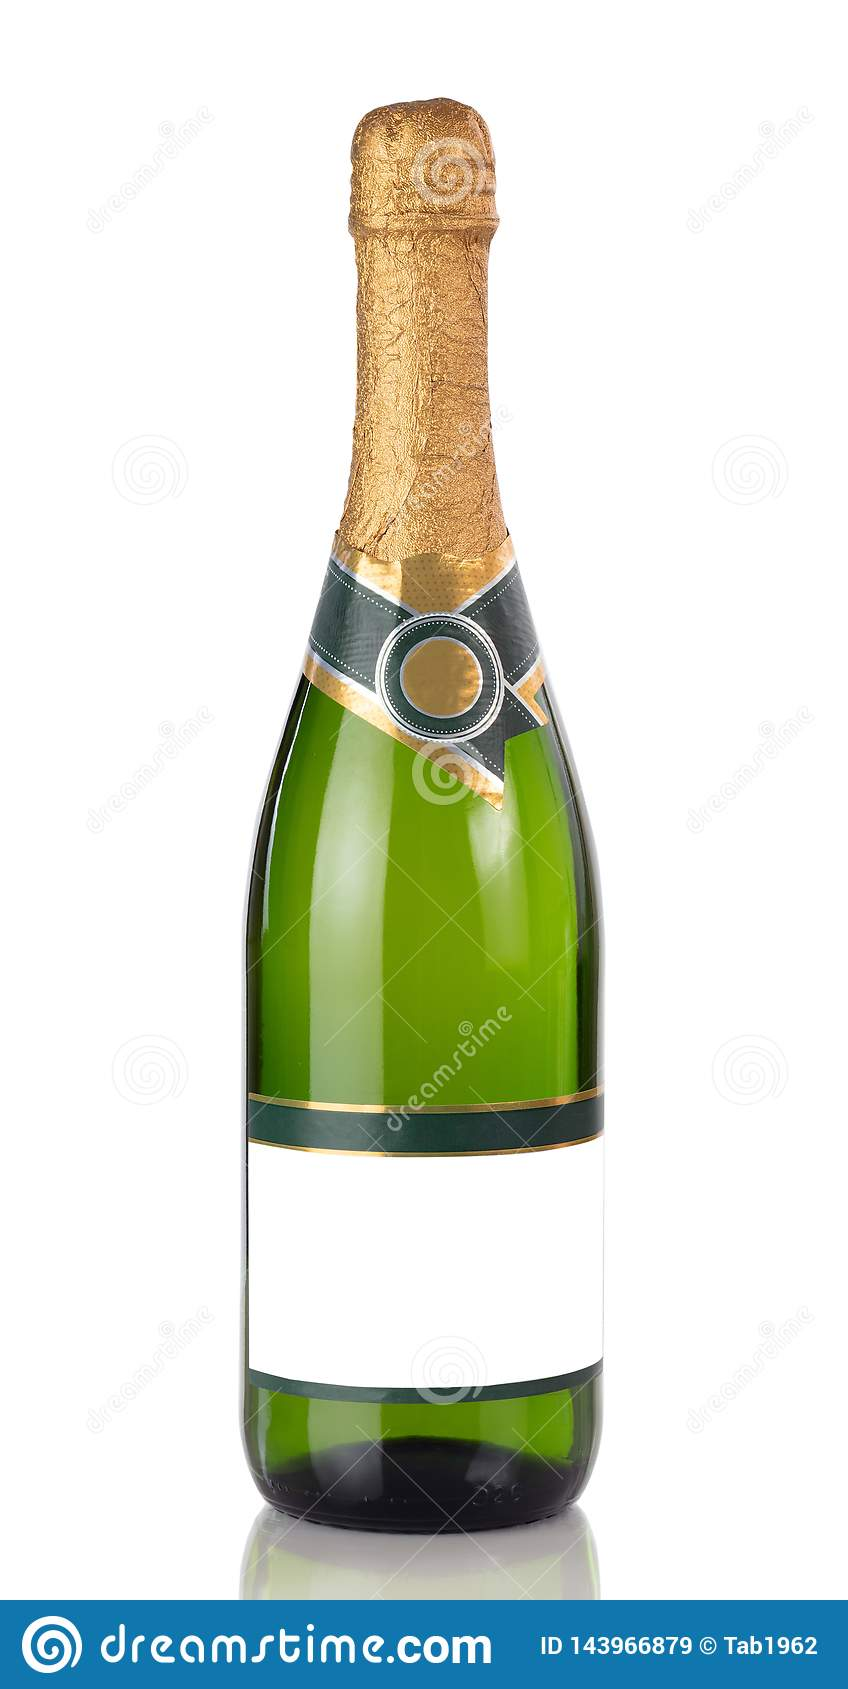 Bottle of Champagne isolated on a white background with reflection in close up view